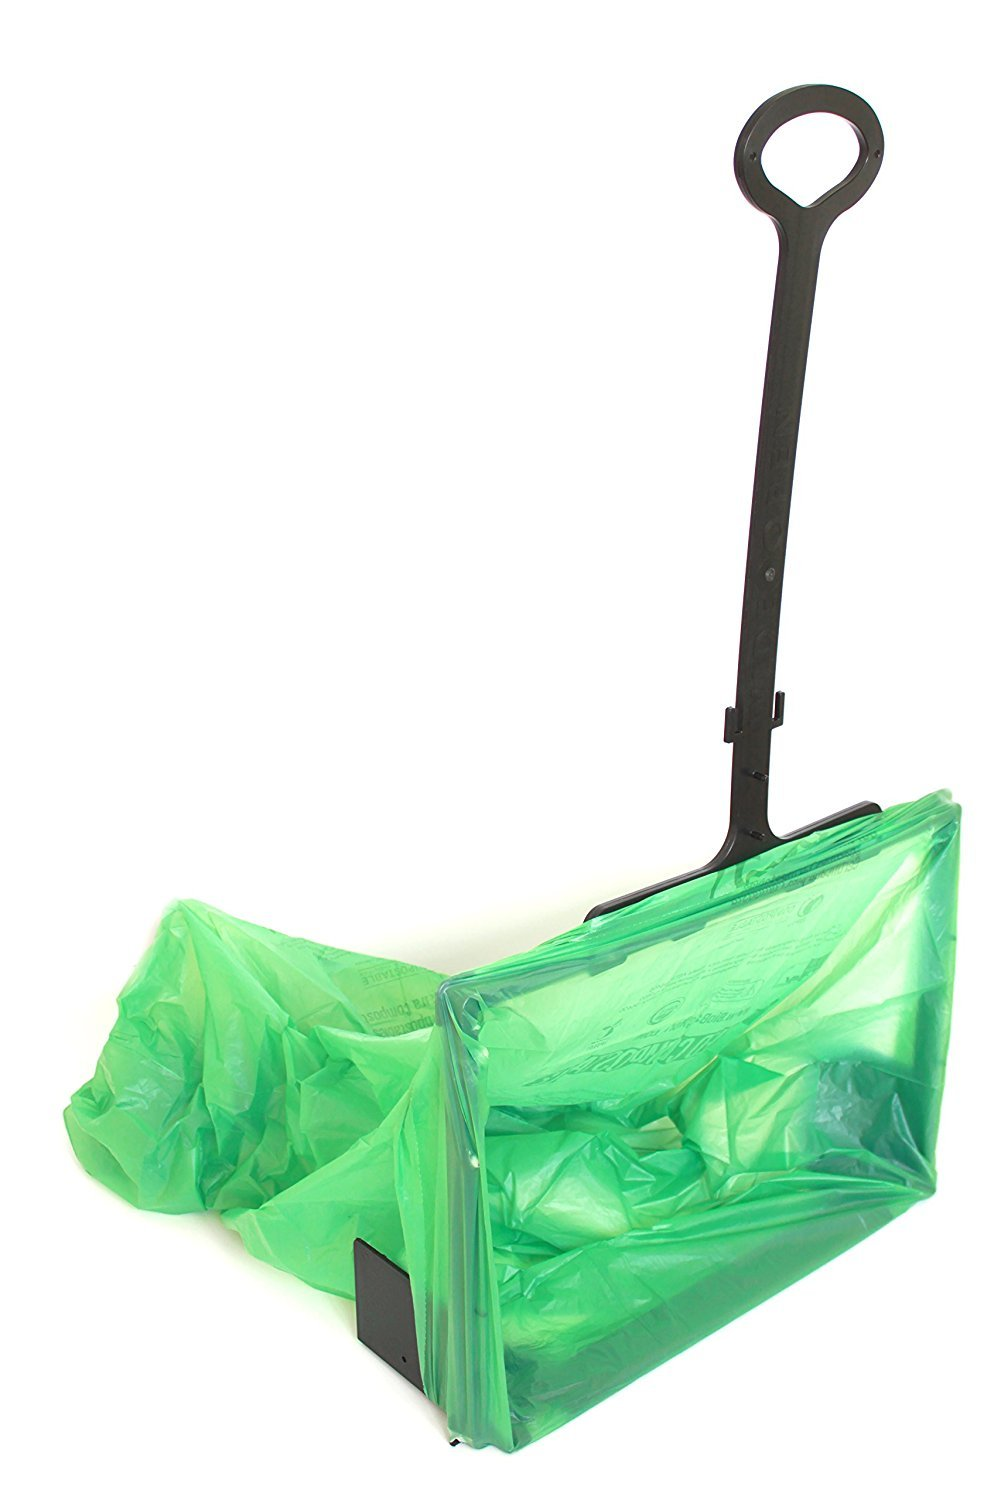 WideOpen's Big-Bagger let's you Rake, Sweep, Shovel, and more into an Open Plastic Trash Bag for Easy Cleanup by WideOpen Bag